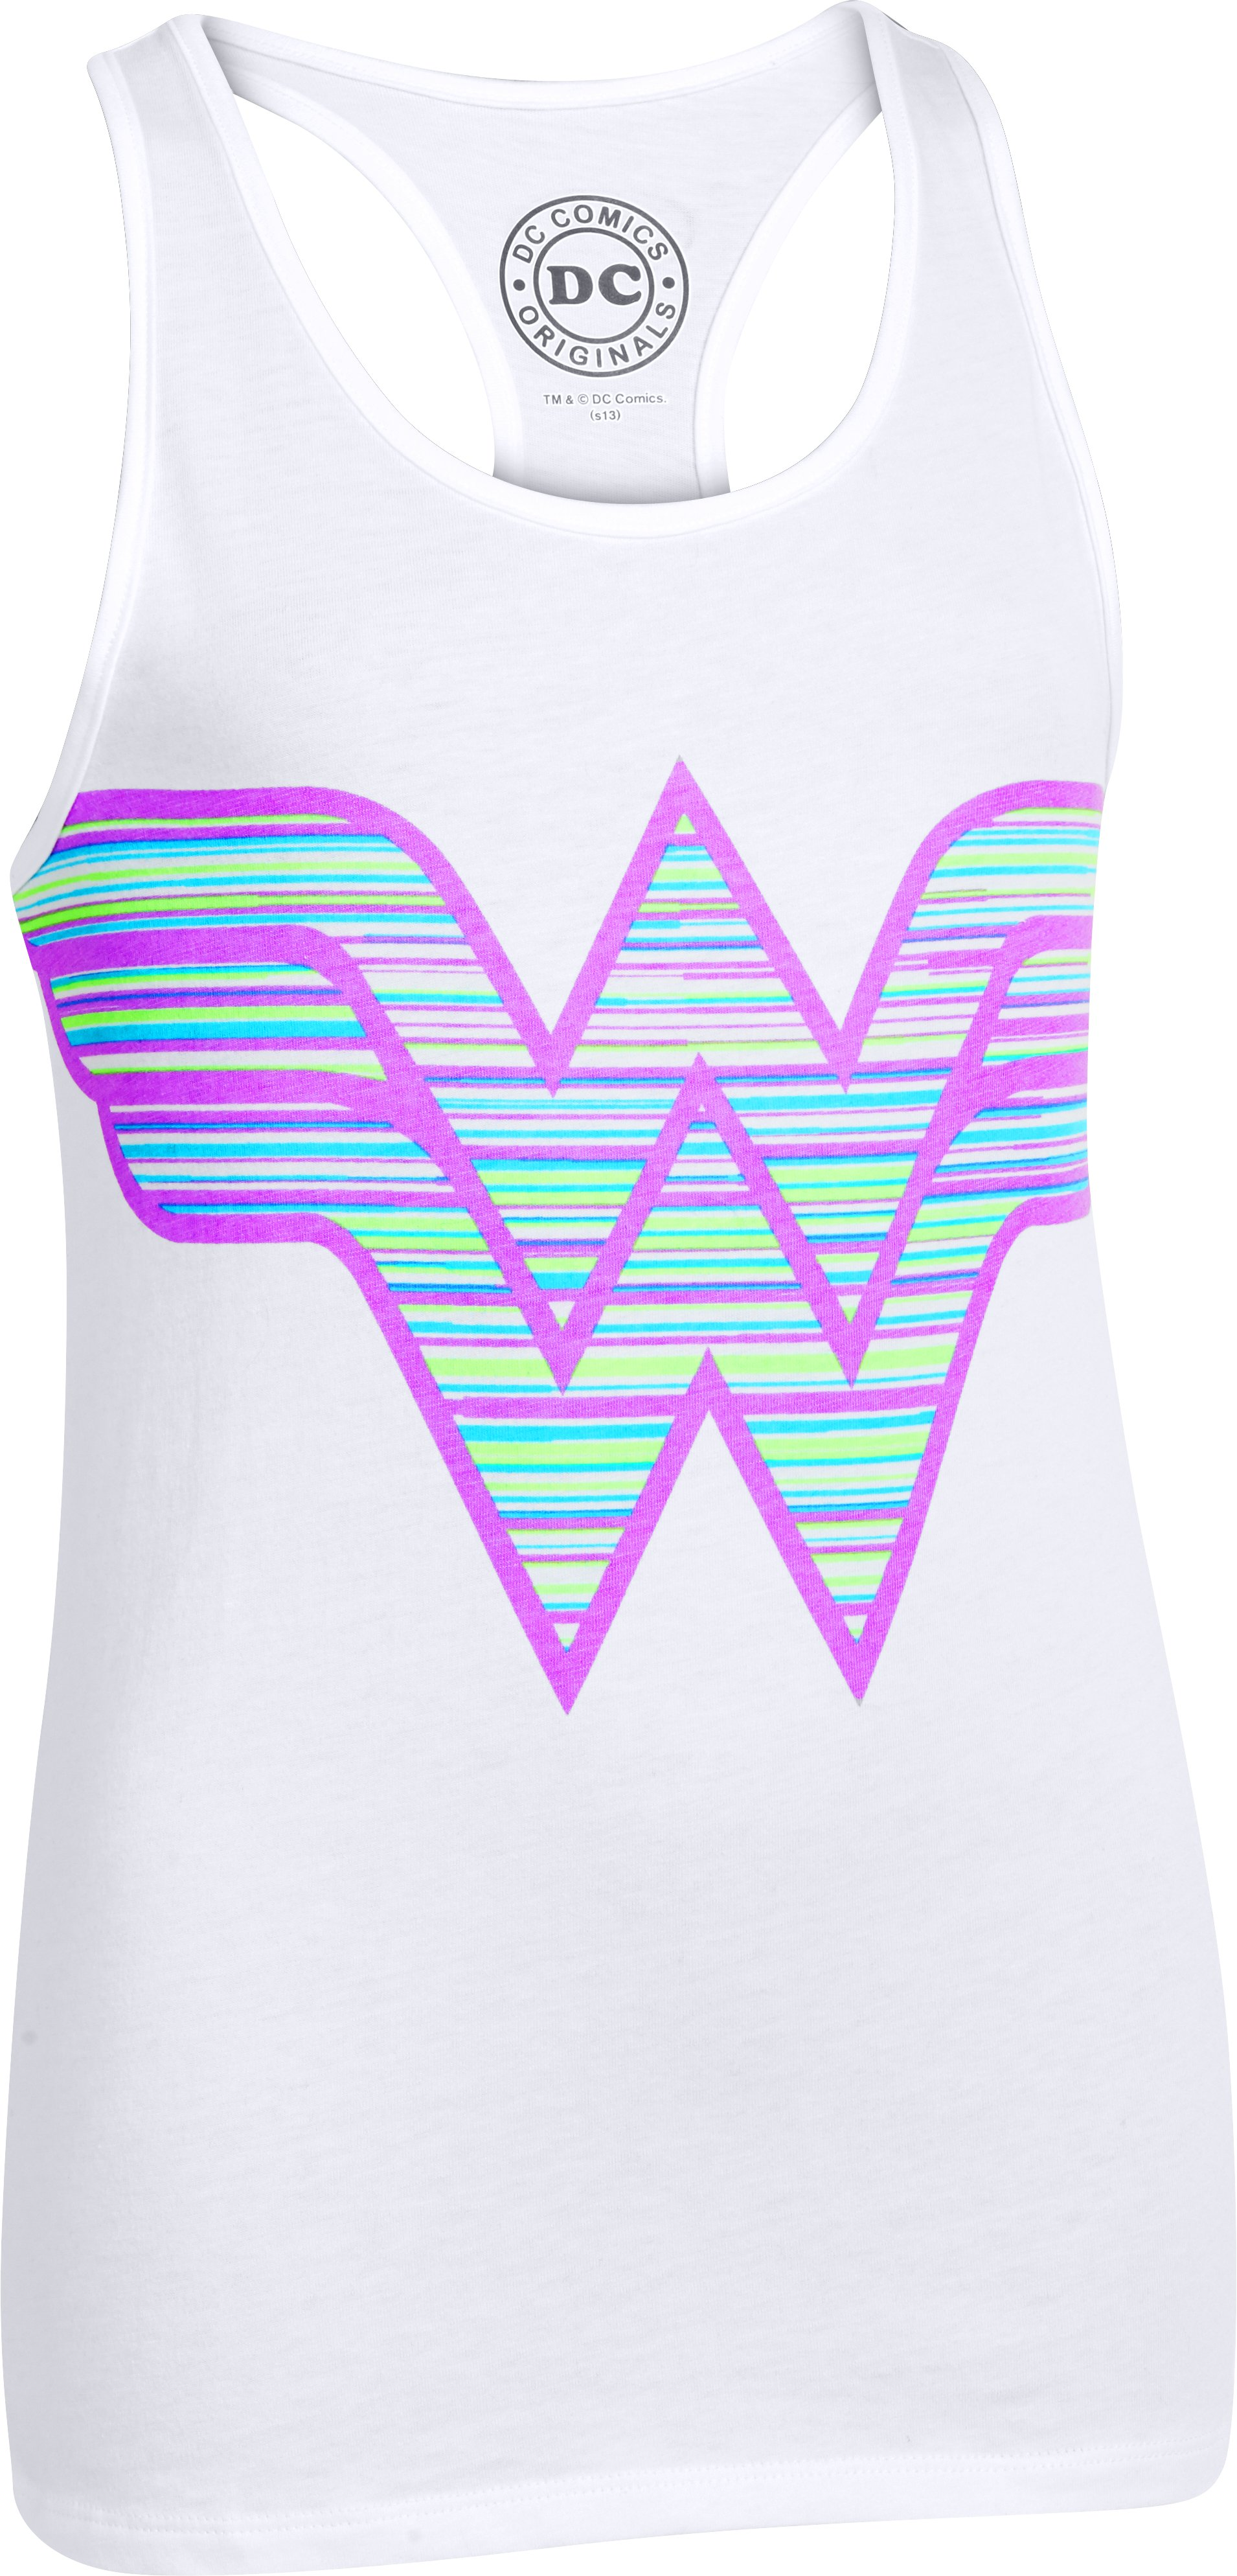 Girls' UA Wonder Woman Printed Logo Tank, White, zoomed image